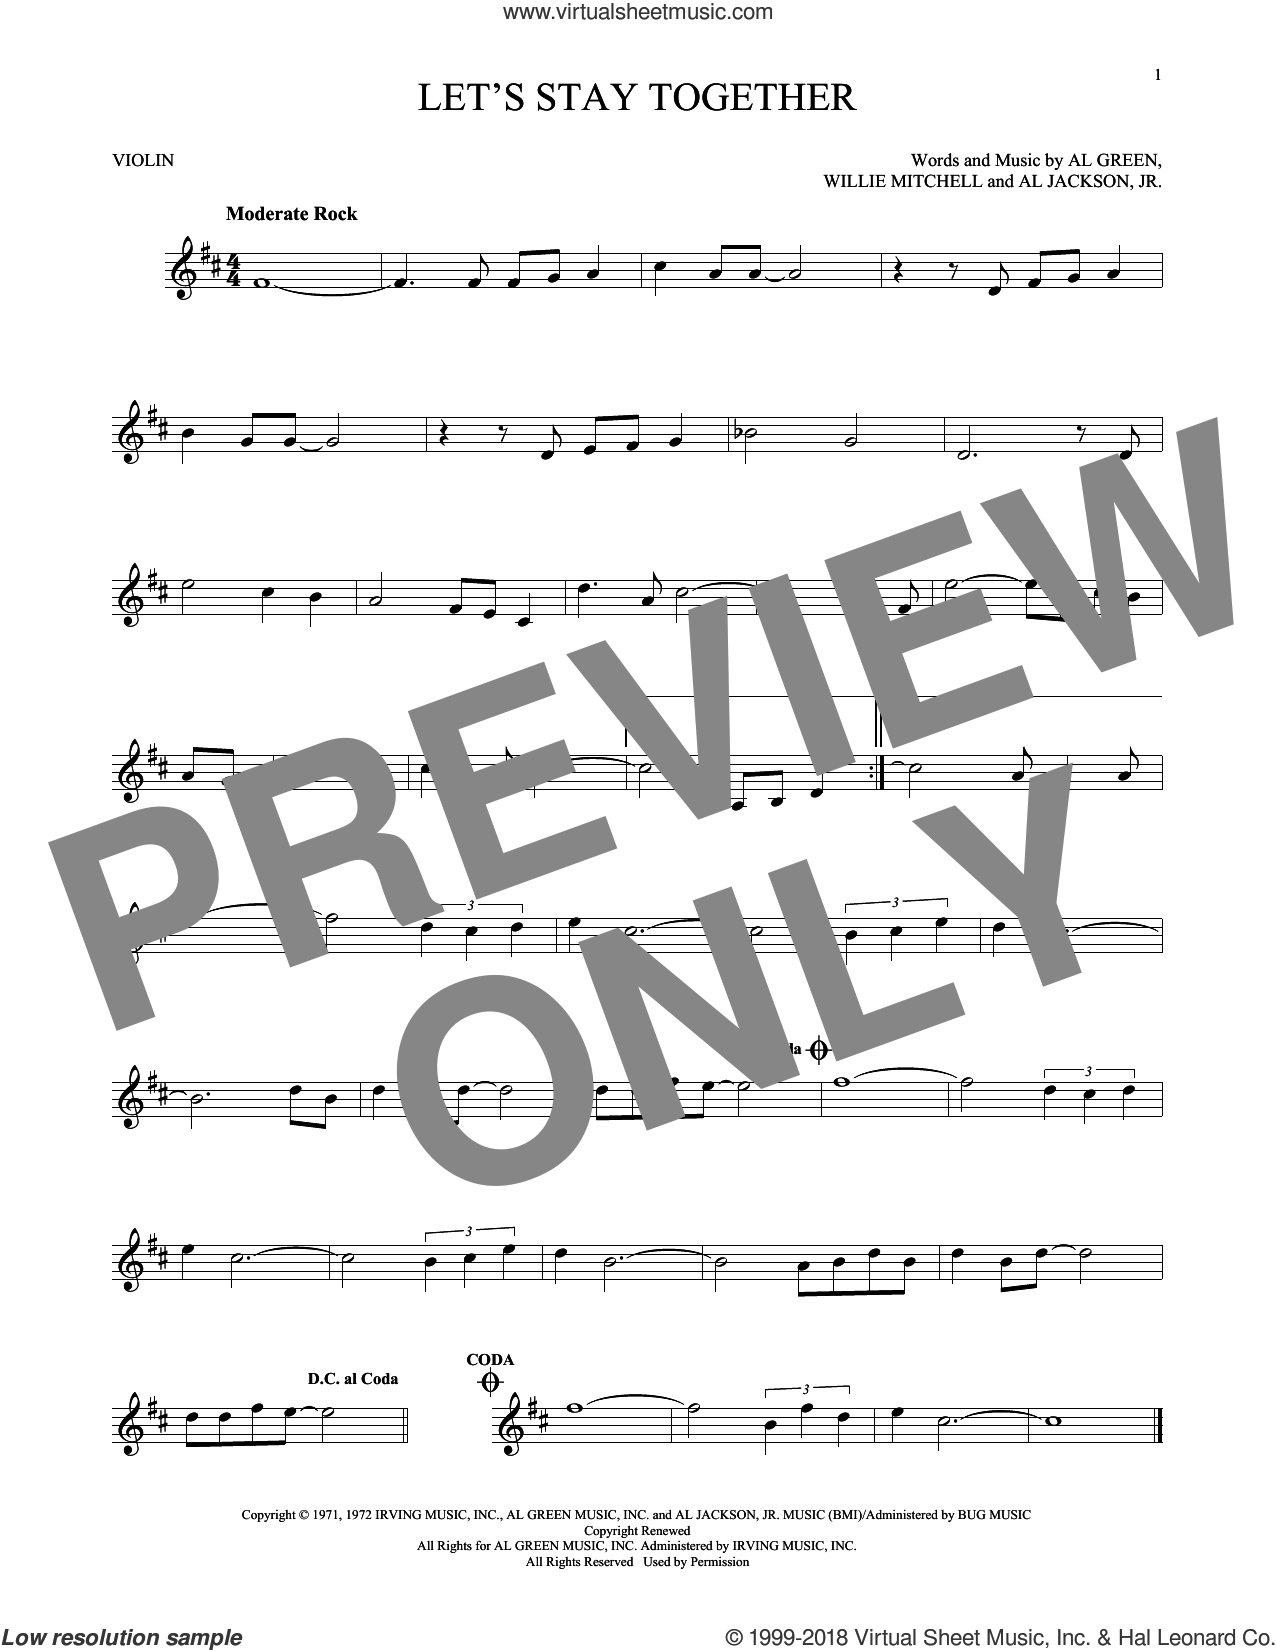 Let's Stay Together sheet music for violin solo by Willie Mitchell, Al Green and Al Jackson, Jr.. Score Image Preview.